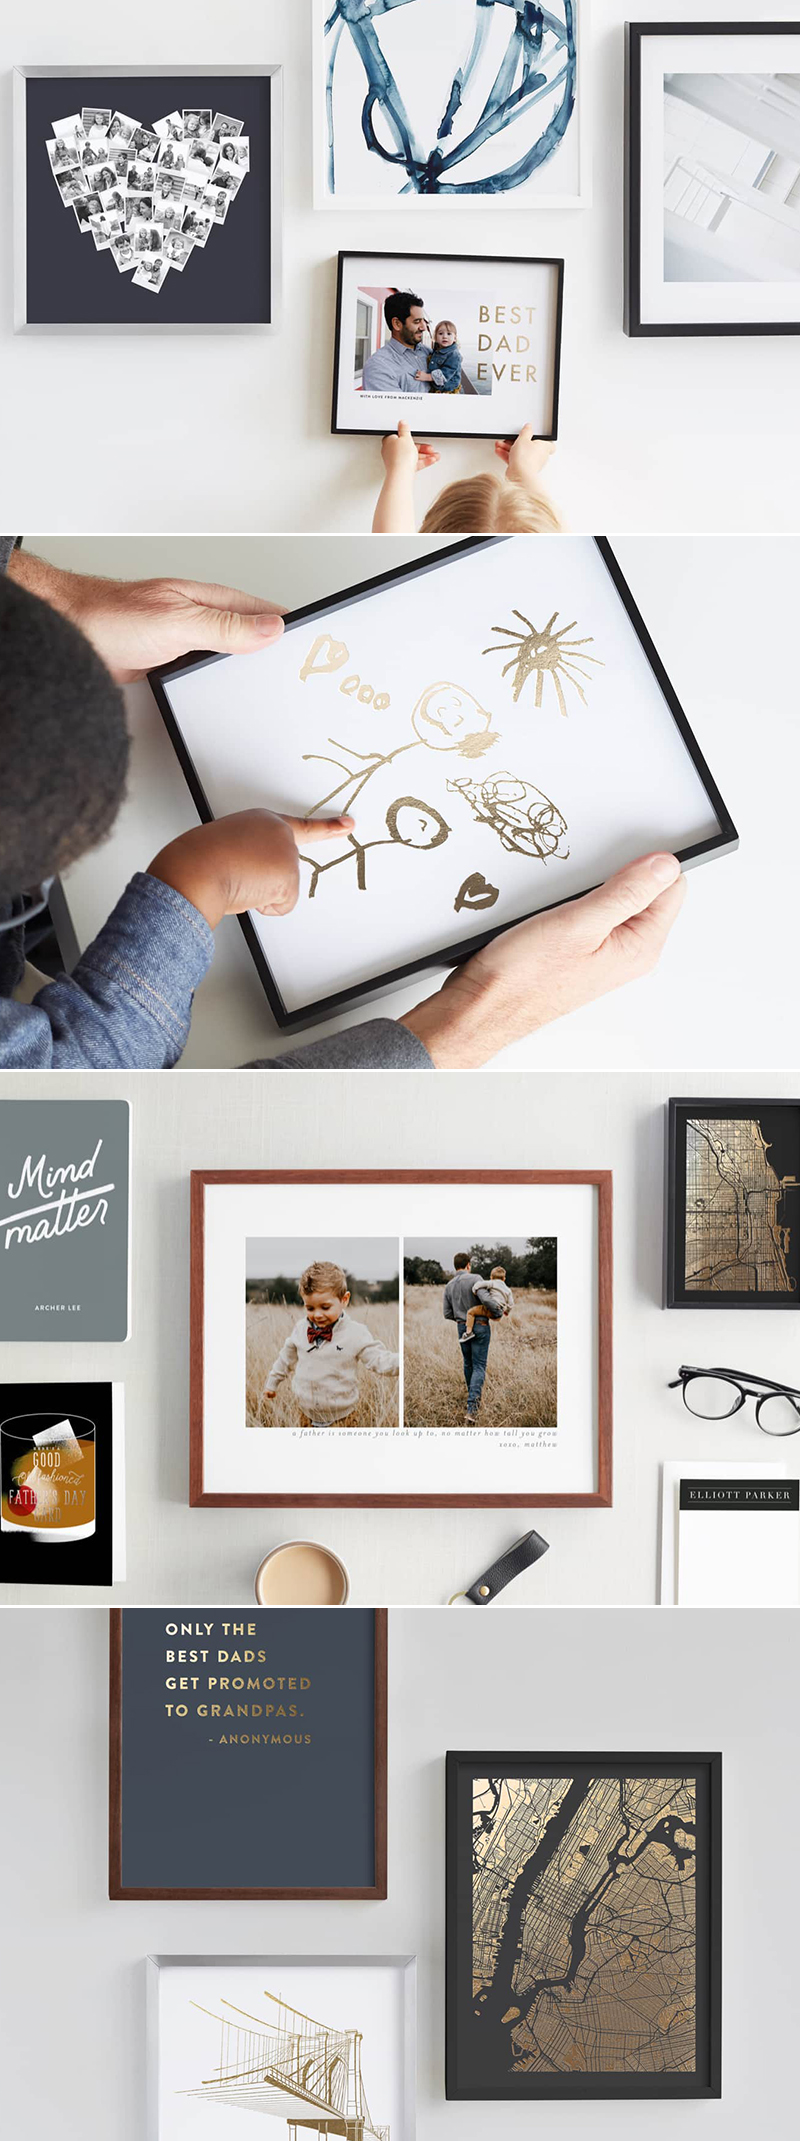 Personalized customized father's day gifts 2019